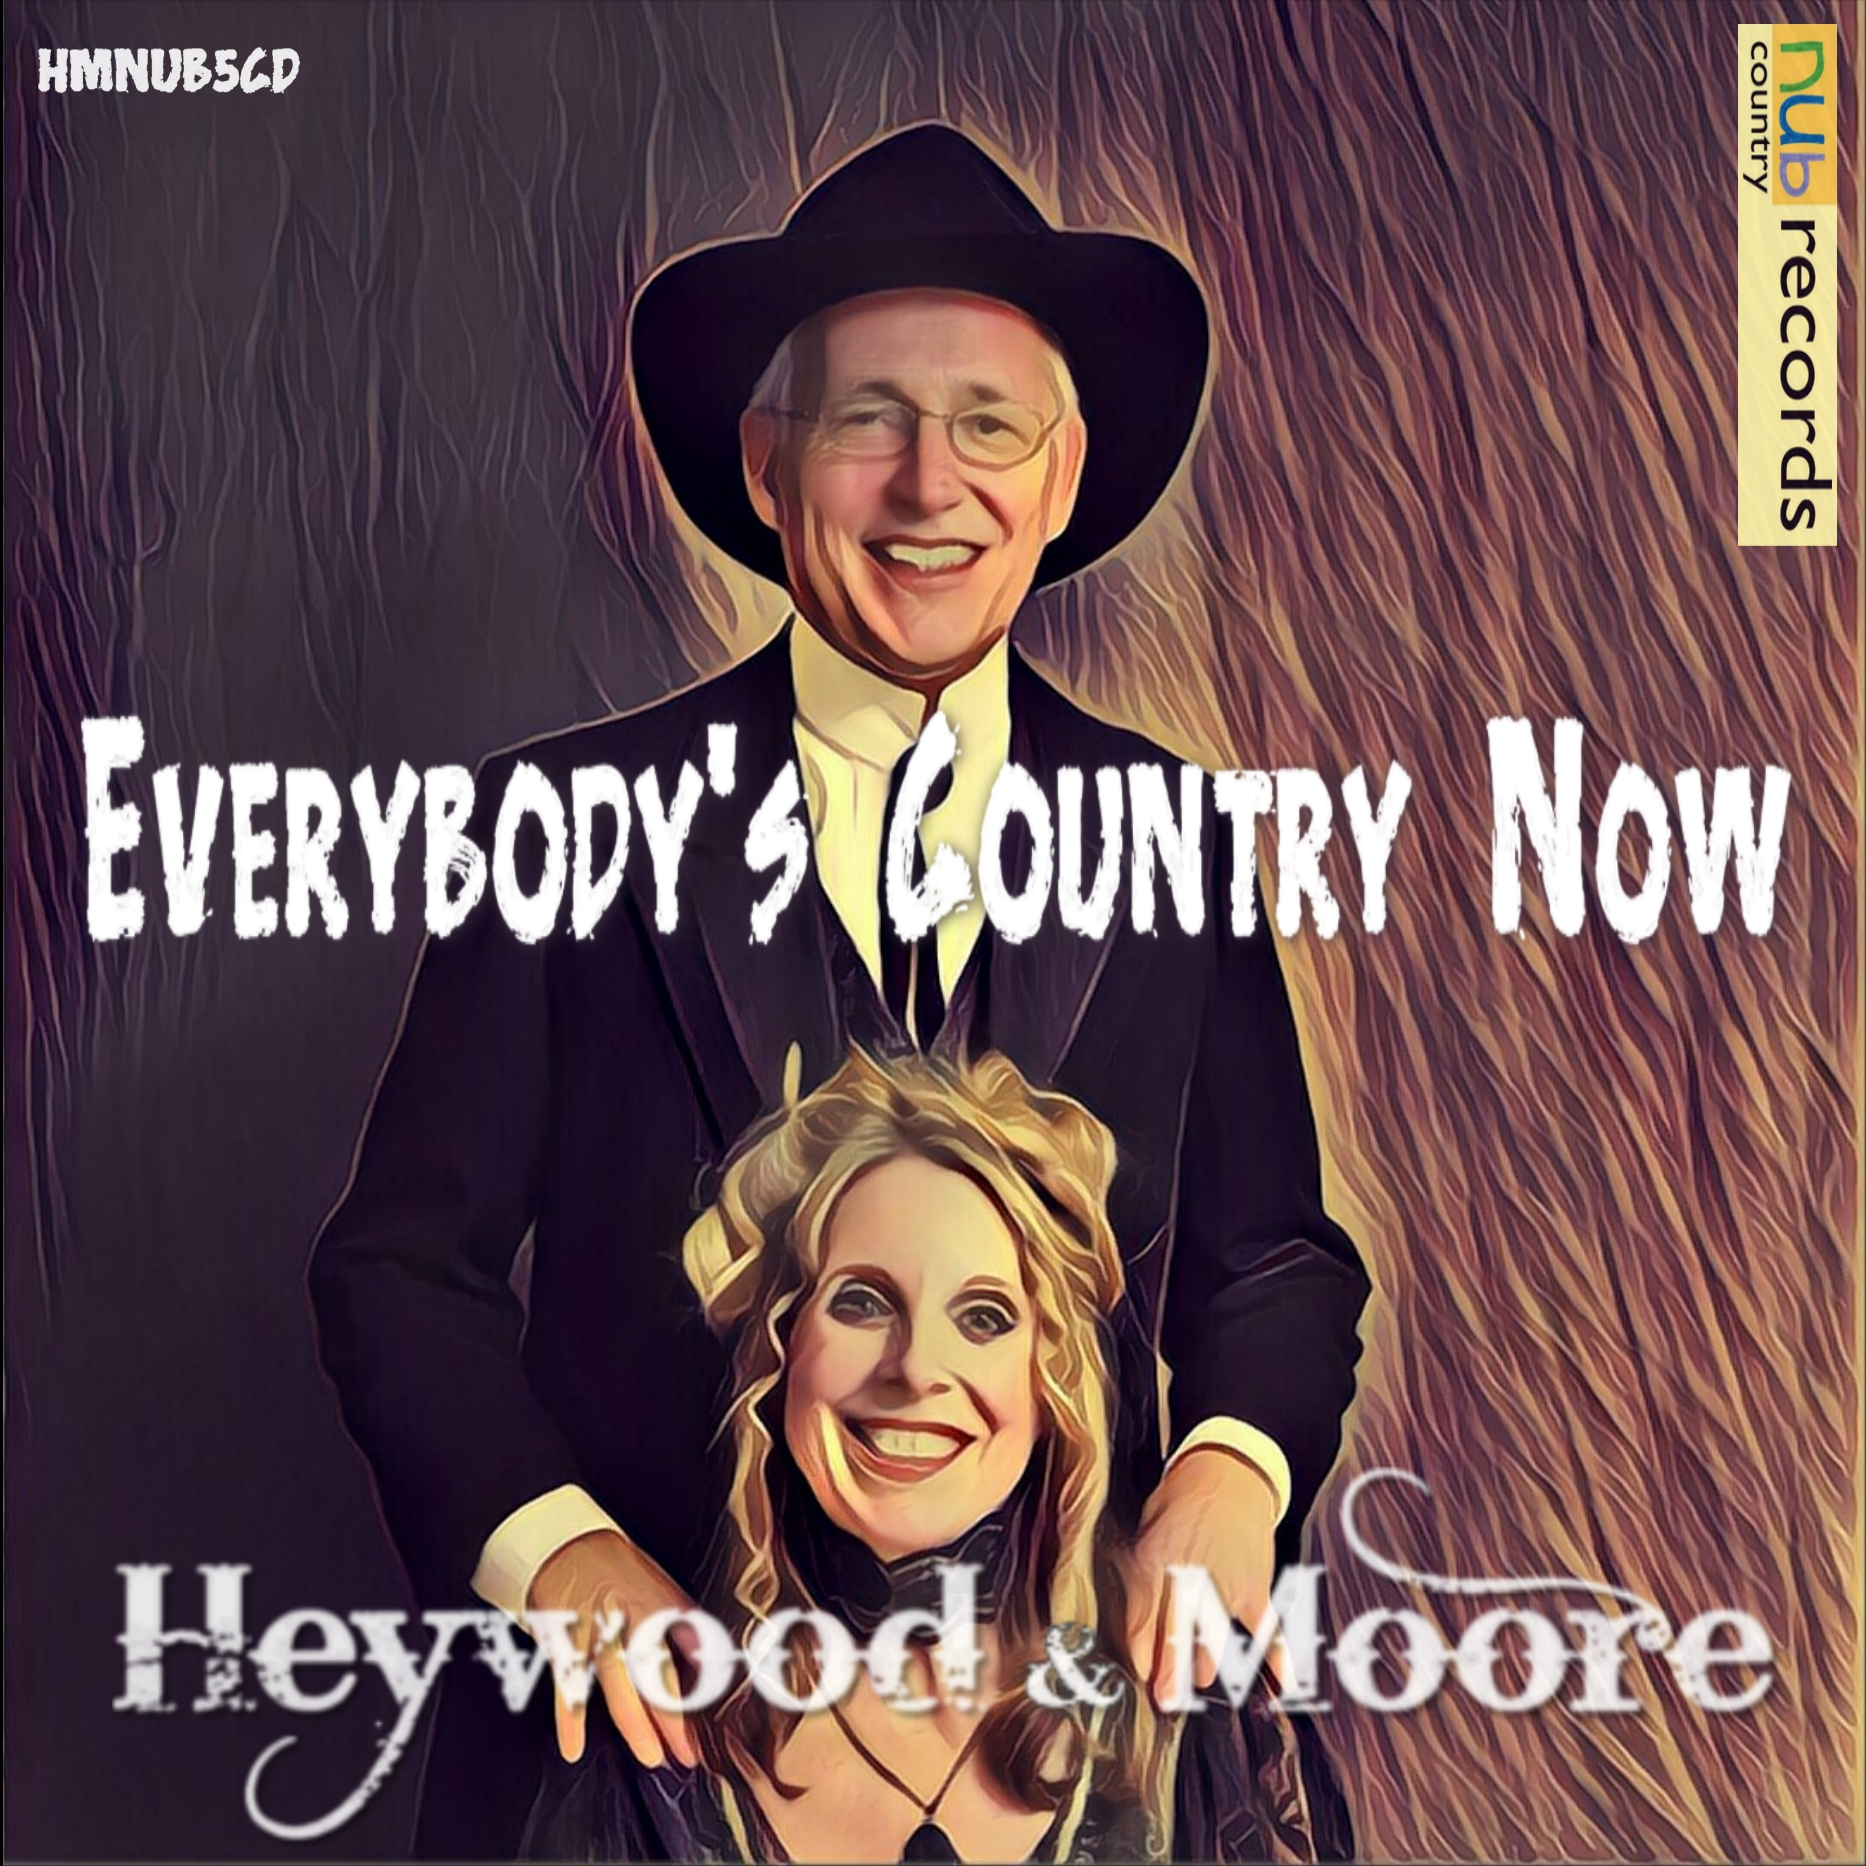 Everybody's Country Now